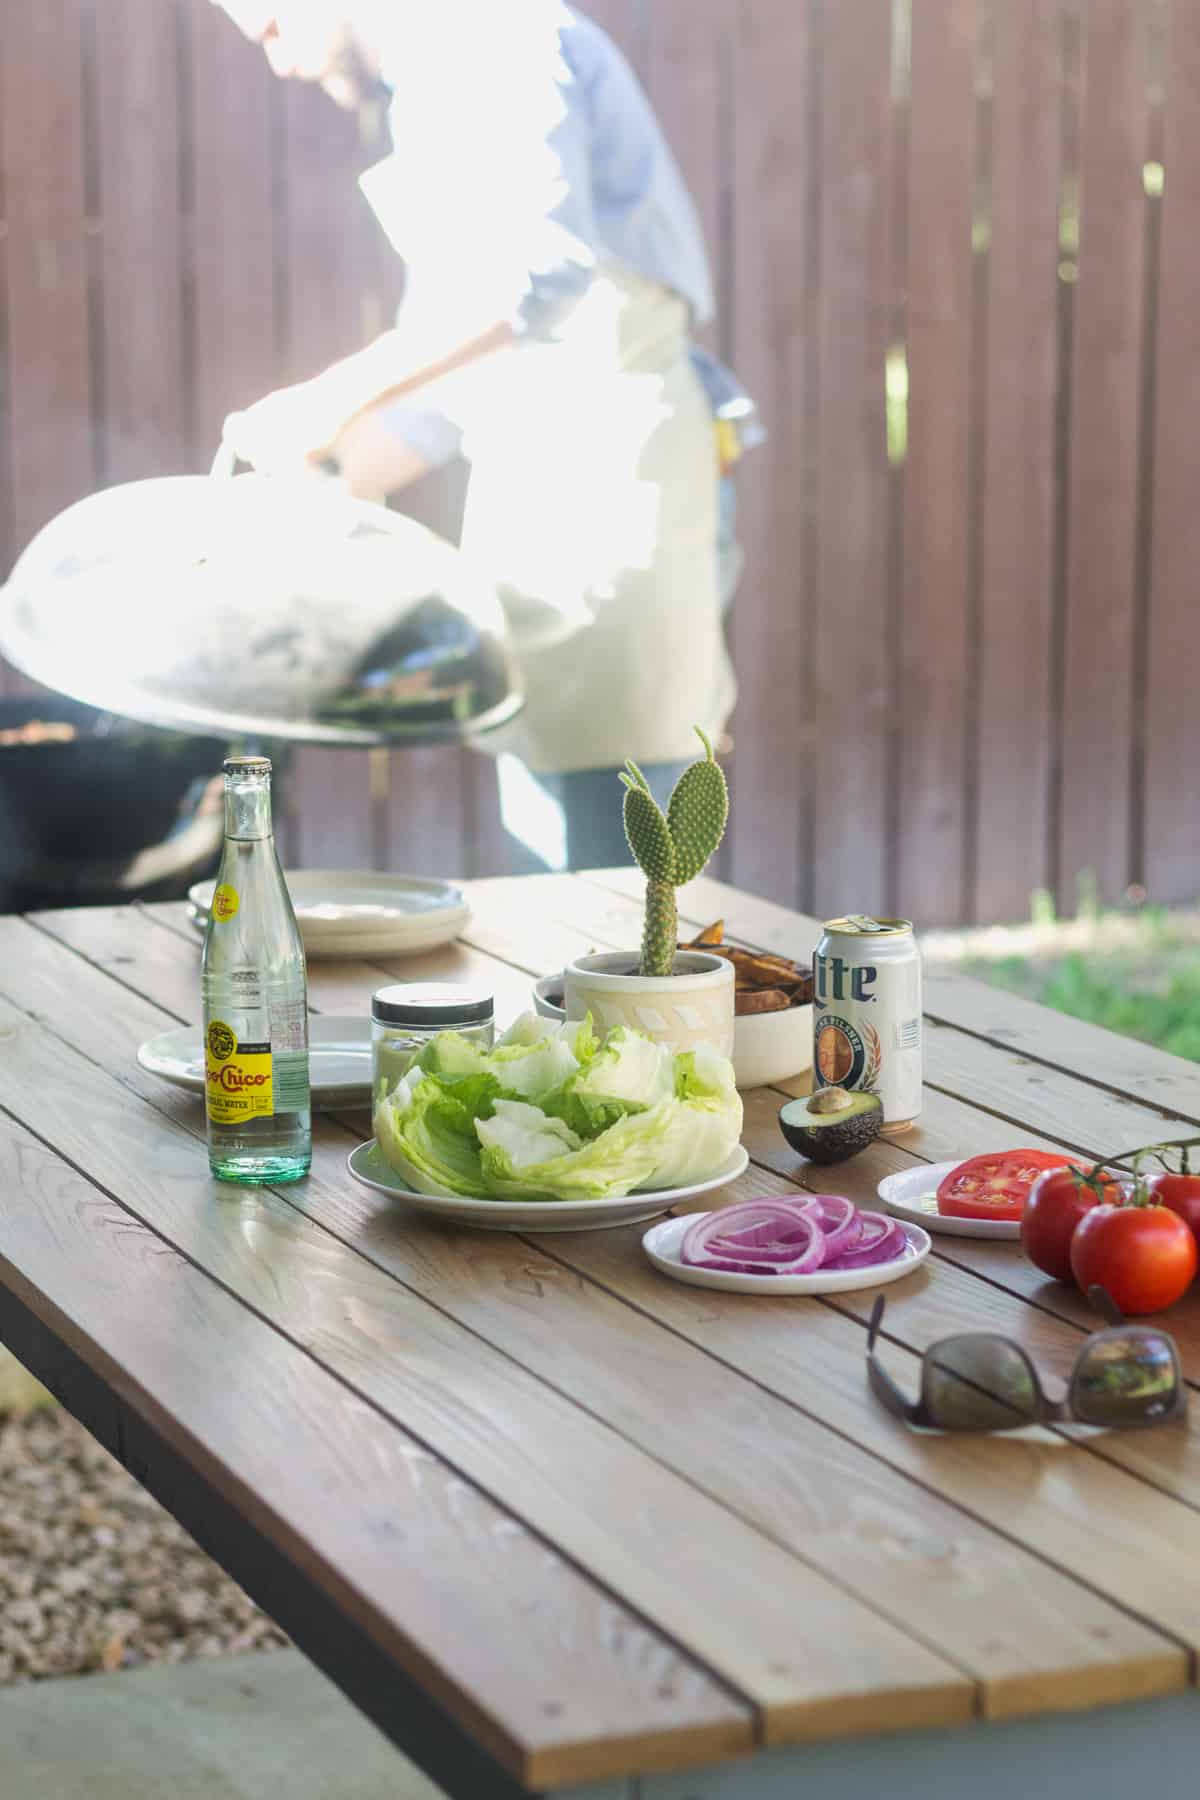 Outdoor wooden table full of toppings for burgers with a man grilling on a charcoal grill behind it